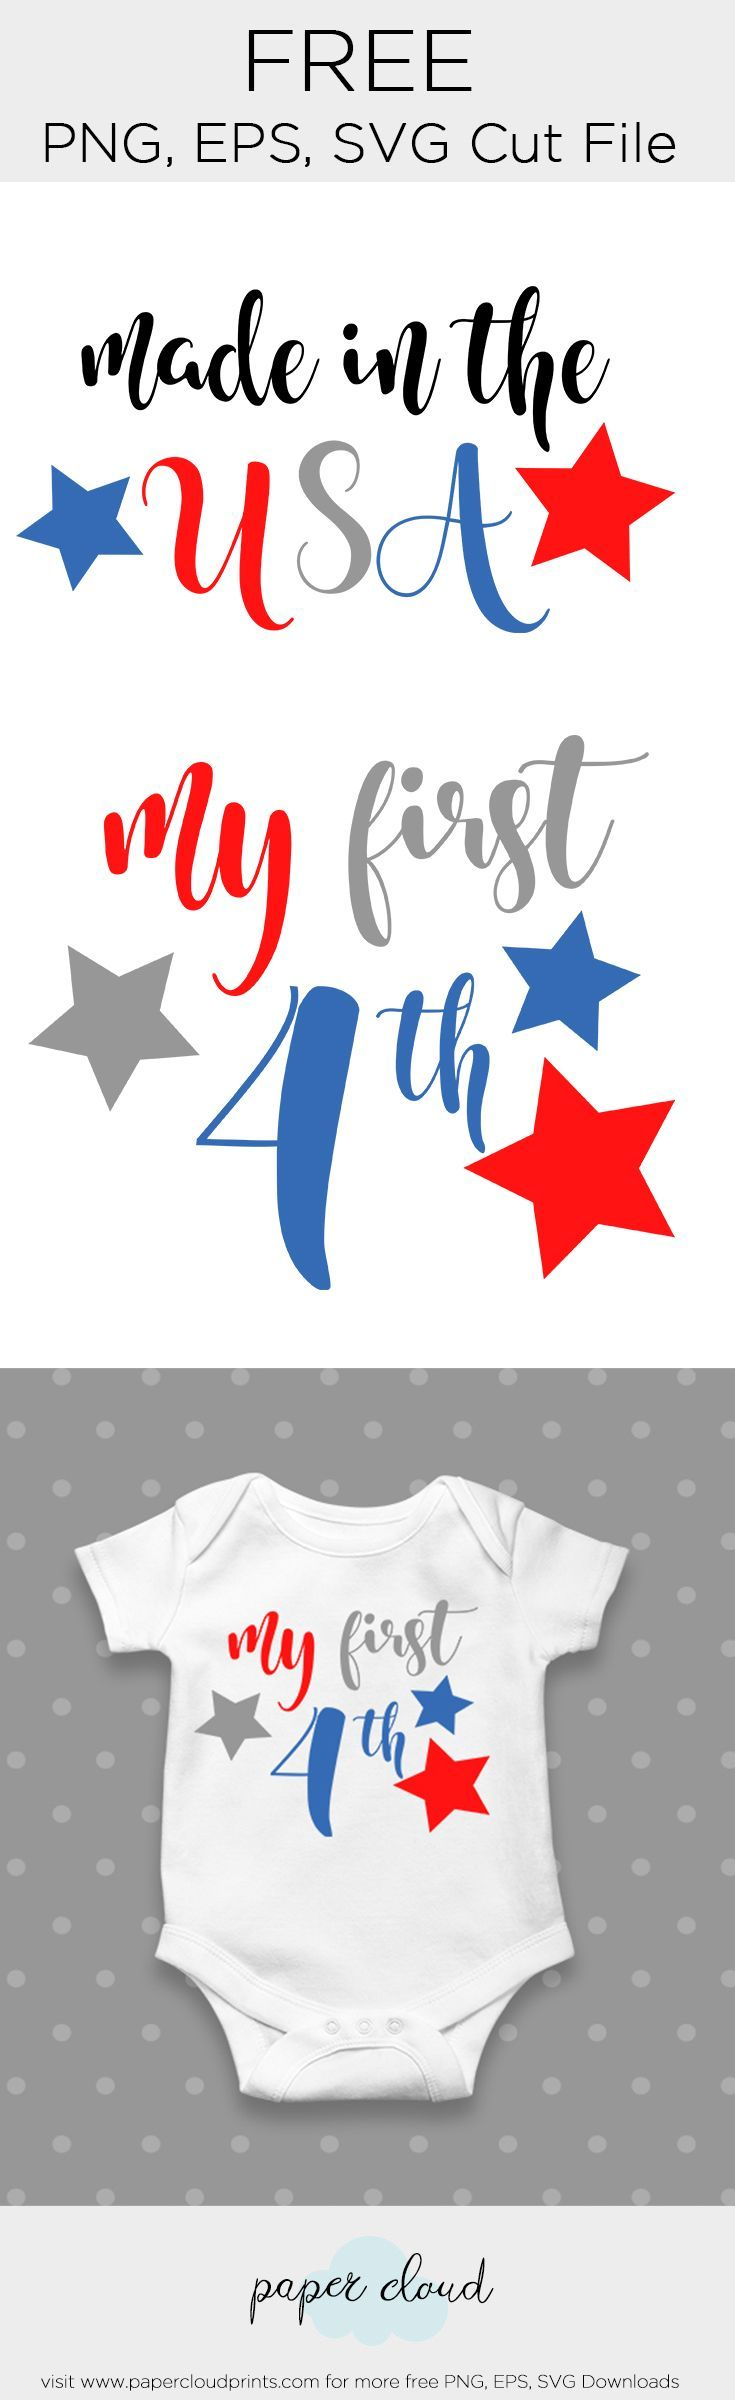 4th of July FREE SVG, PNG, EPS Download, 1st Forth of July